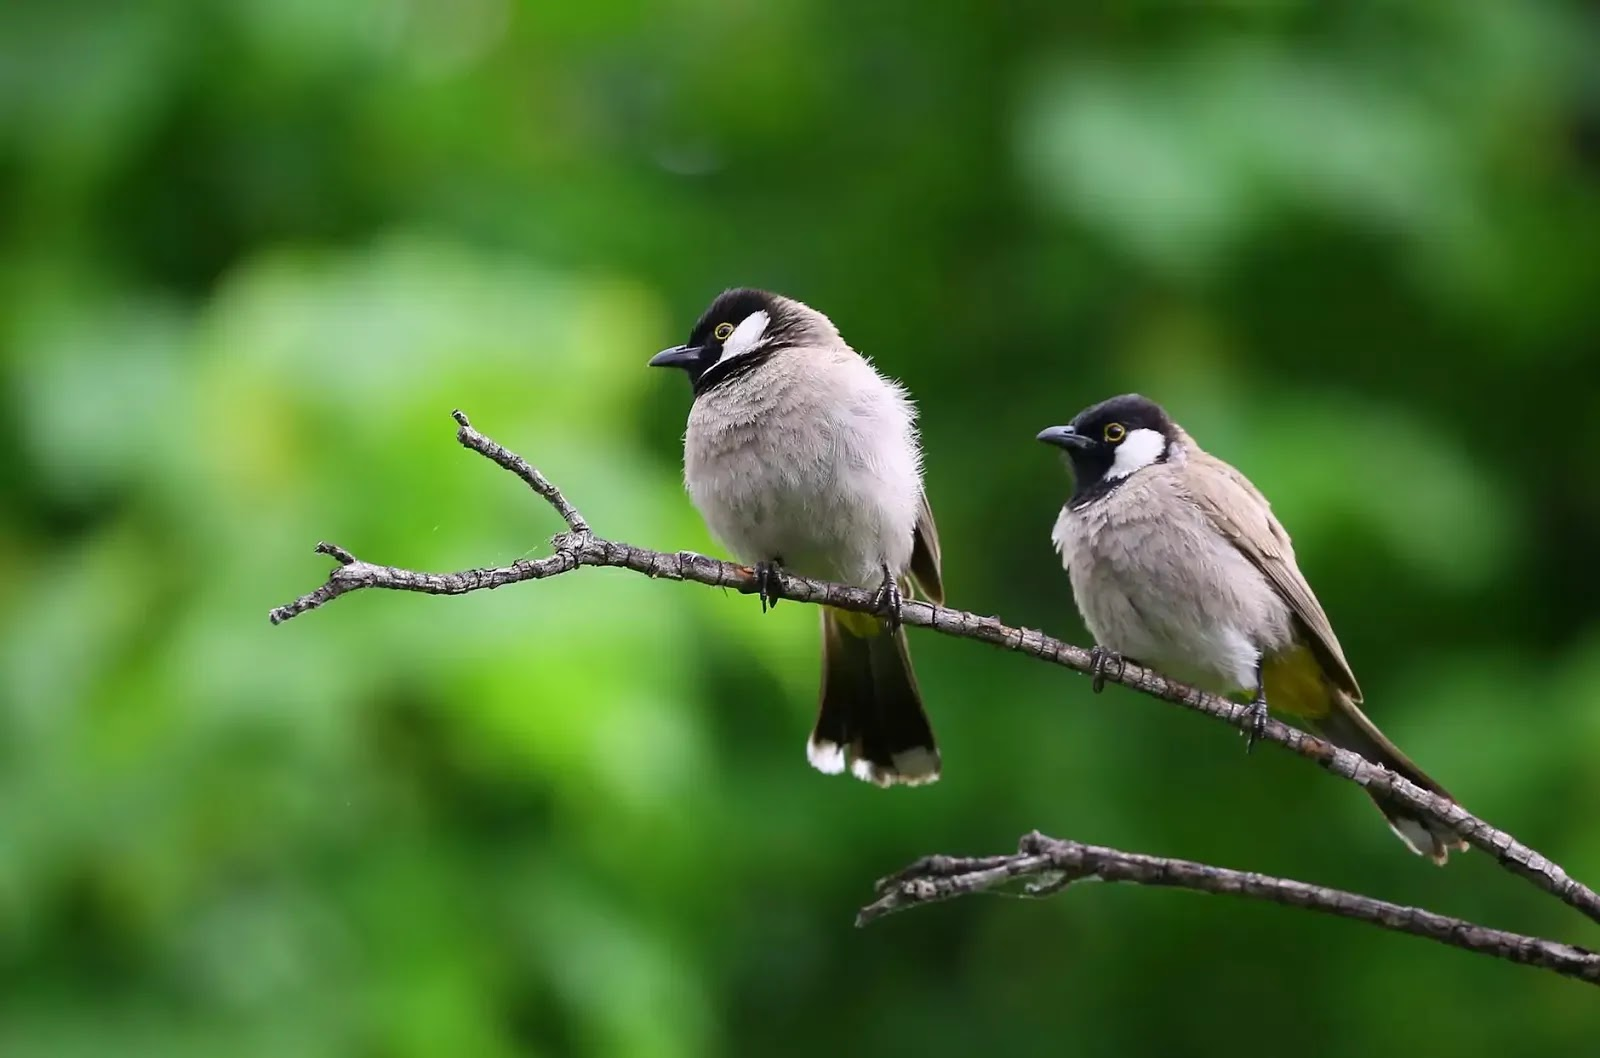 Birds wallpapers for android, Hd birds wallpapers for pc, Angry birds hd wallpapers for desktop, Birds wallpapers for desktop, Birds wallpaper for desktop free download, Full hd birds wallpapers for mobile